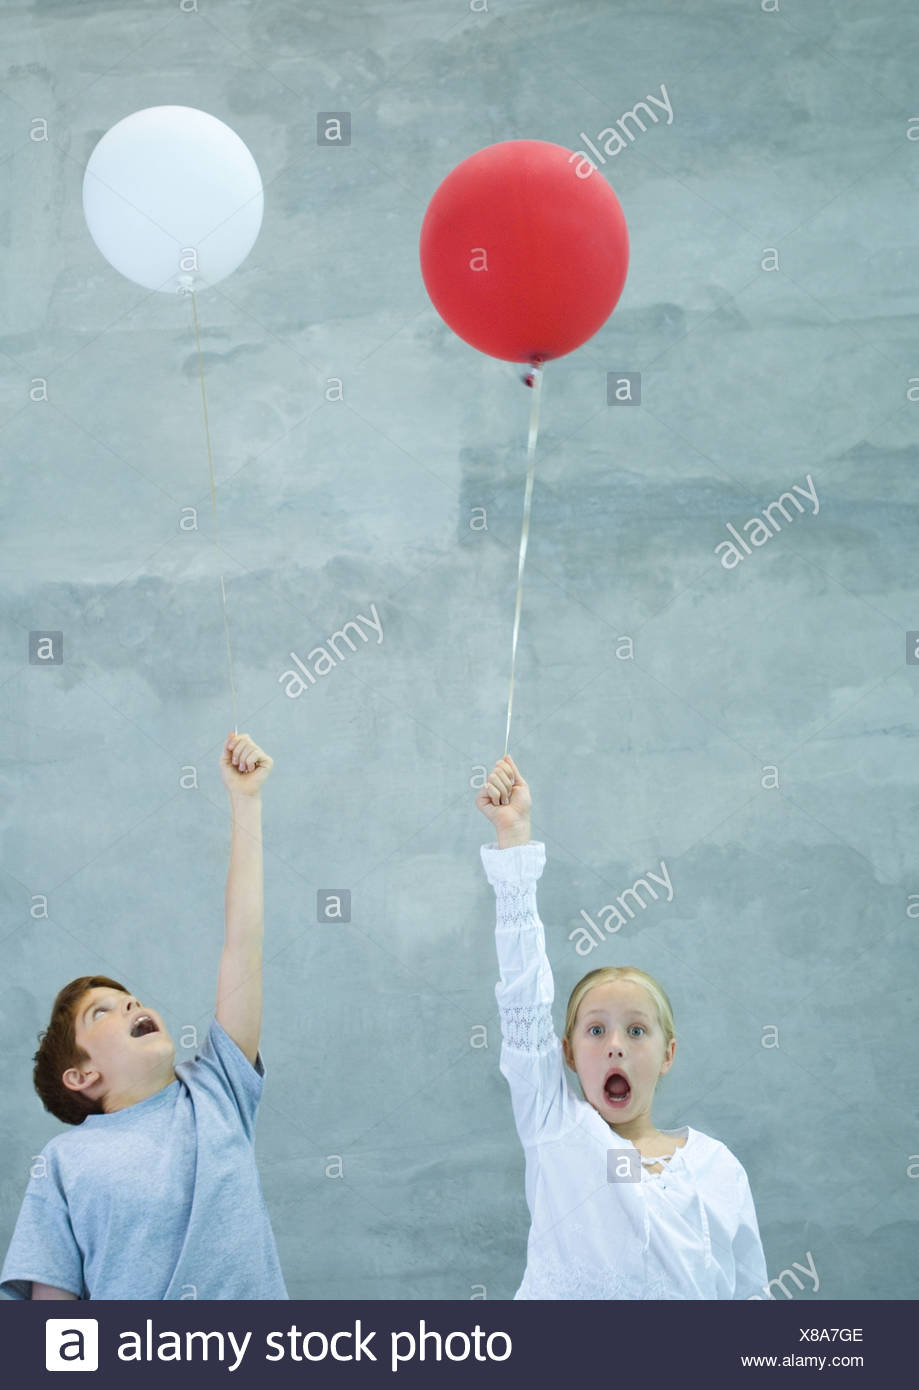 Two children holding balloons, shouting - Stock Image